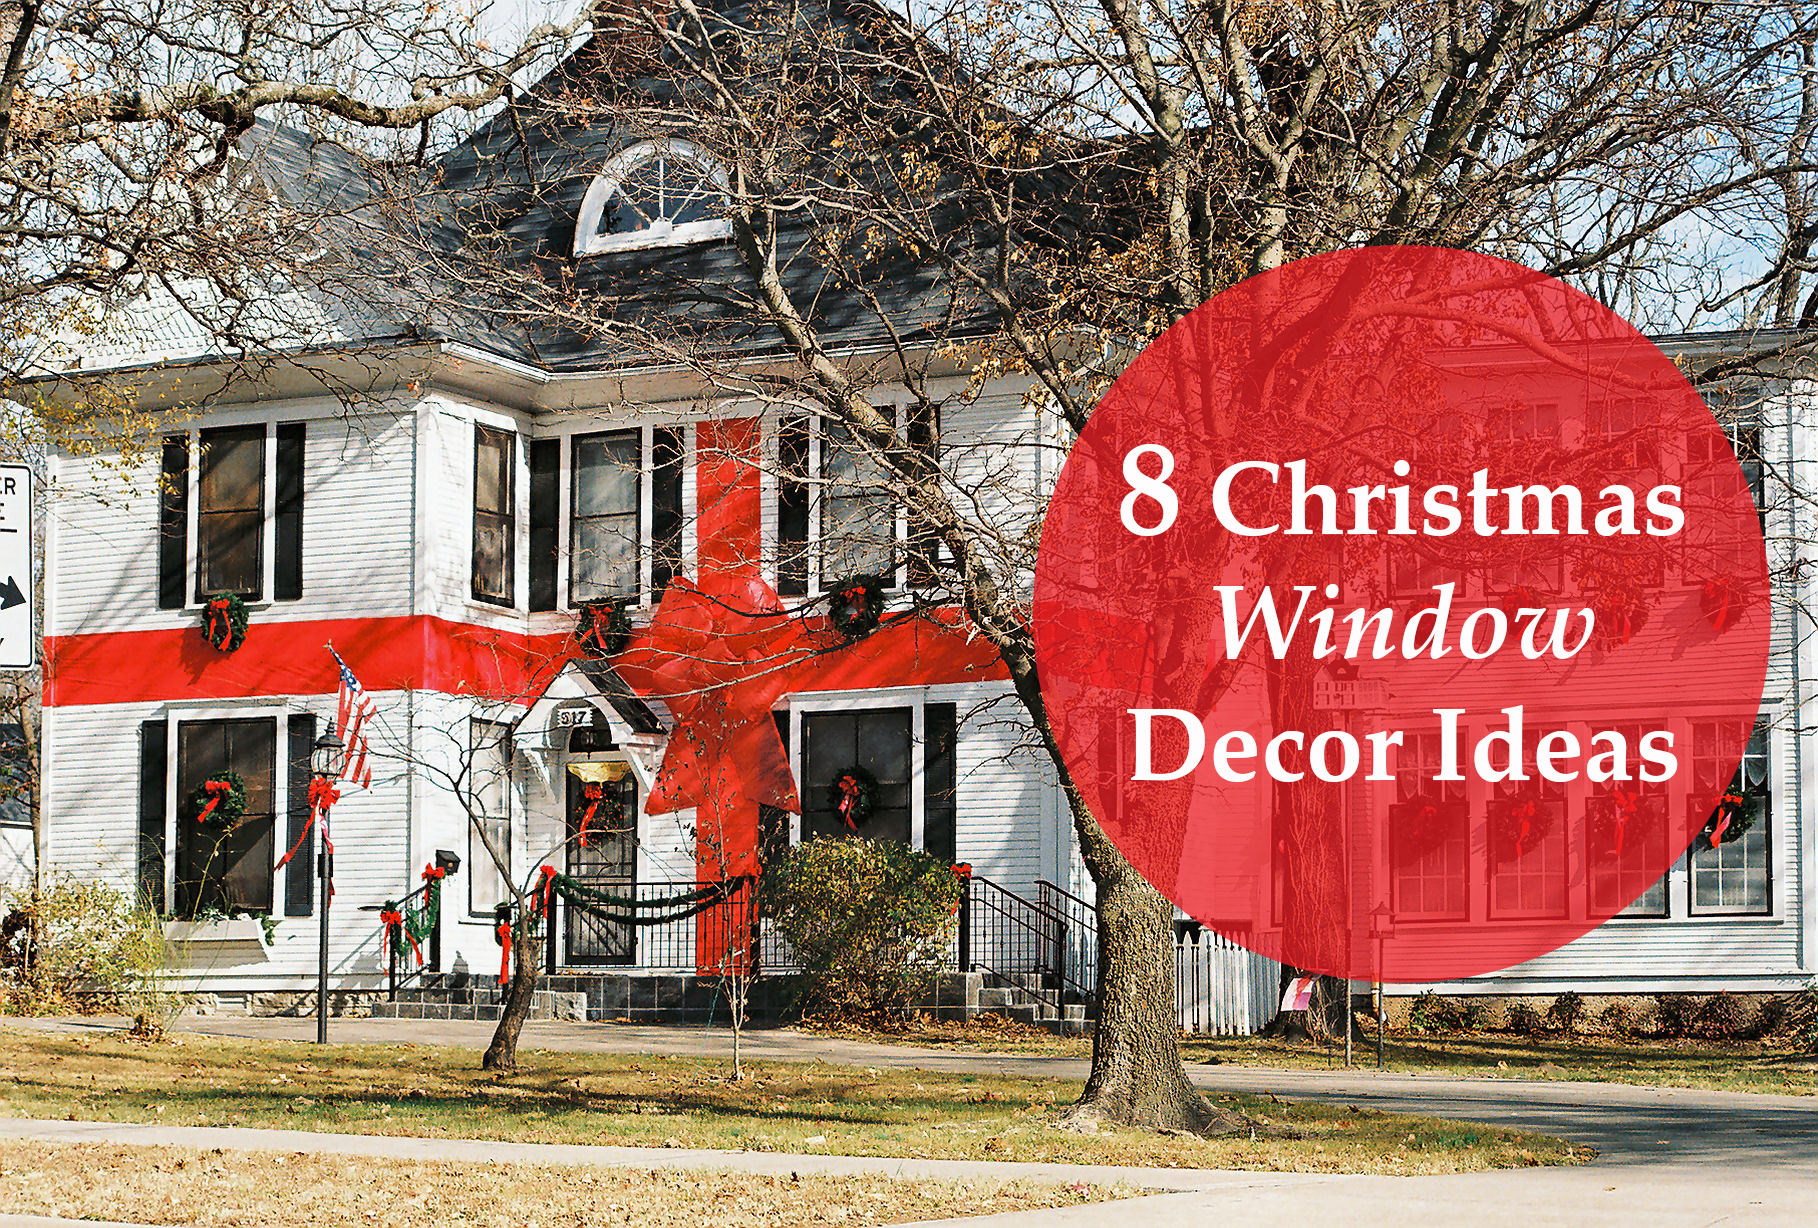 8 Christmas Window Décor Ideas